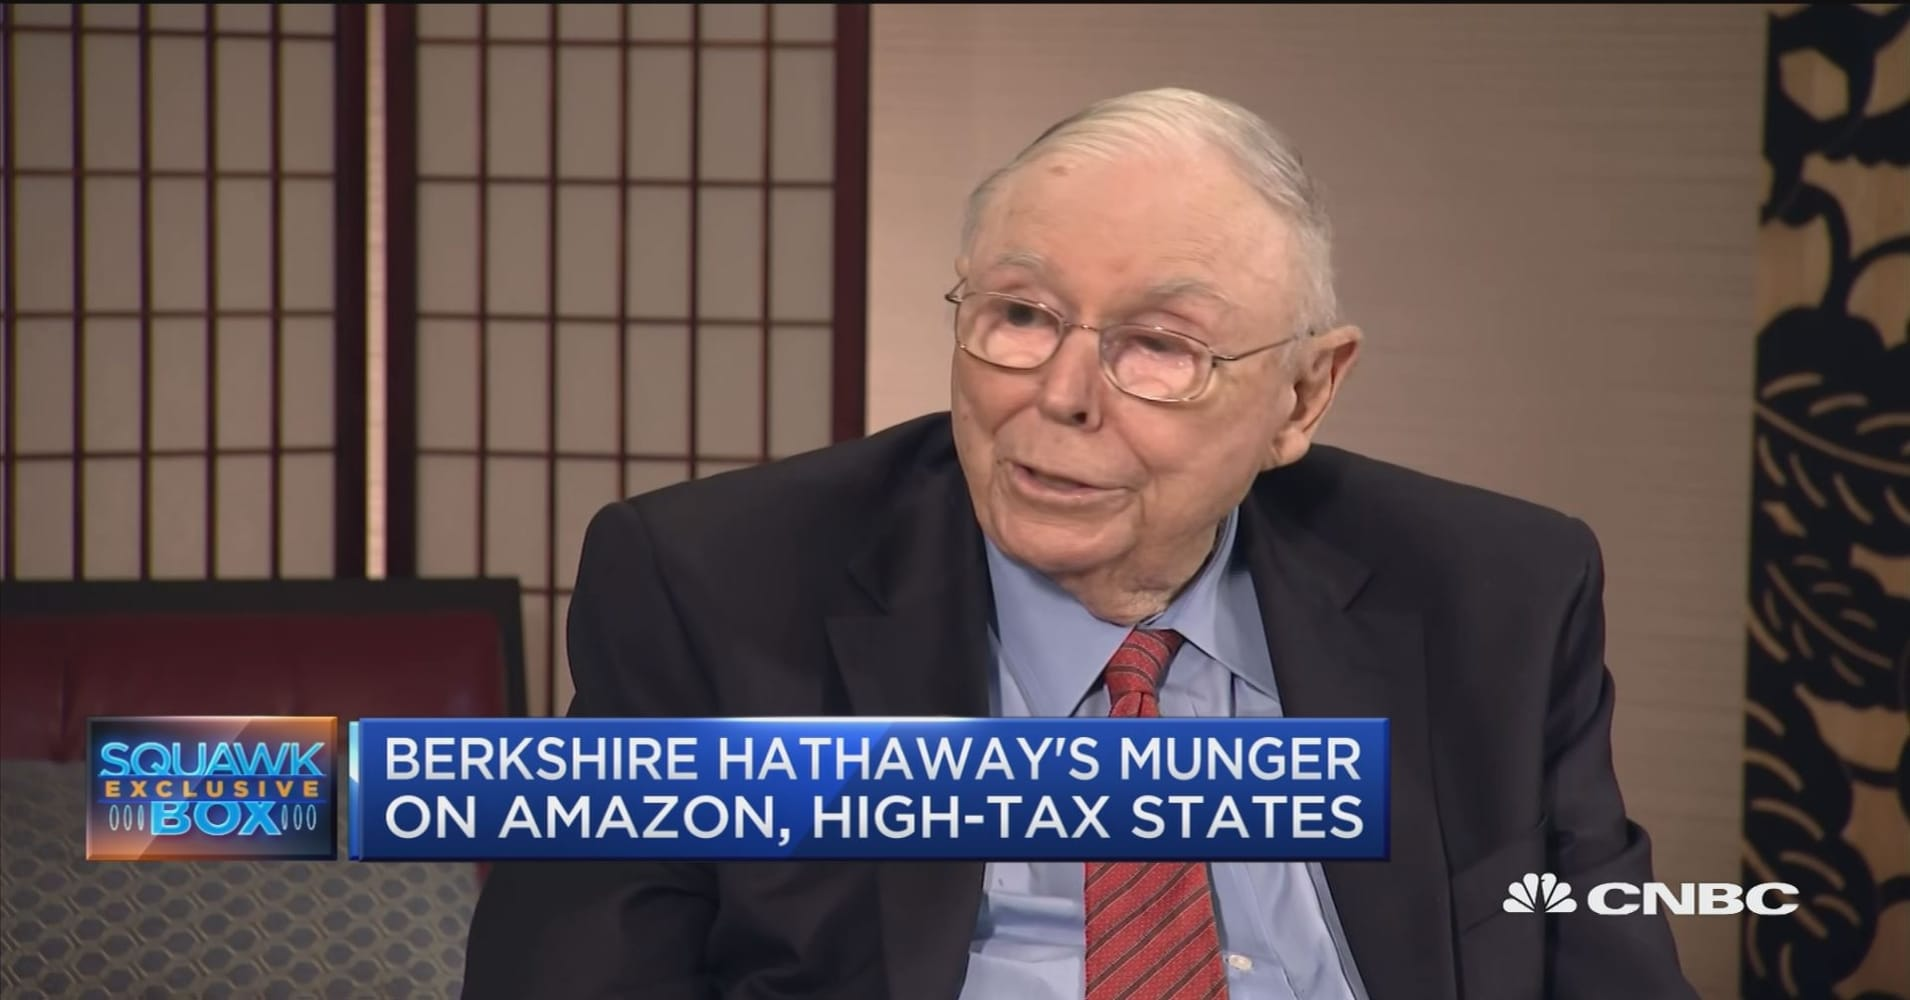 Berkshire Hathaway's Munger: High-tax states are driving out the rich